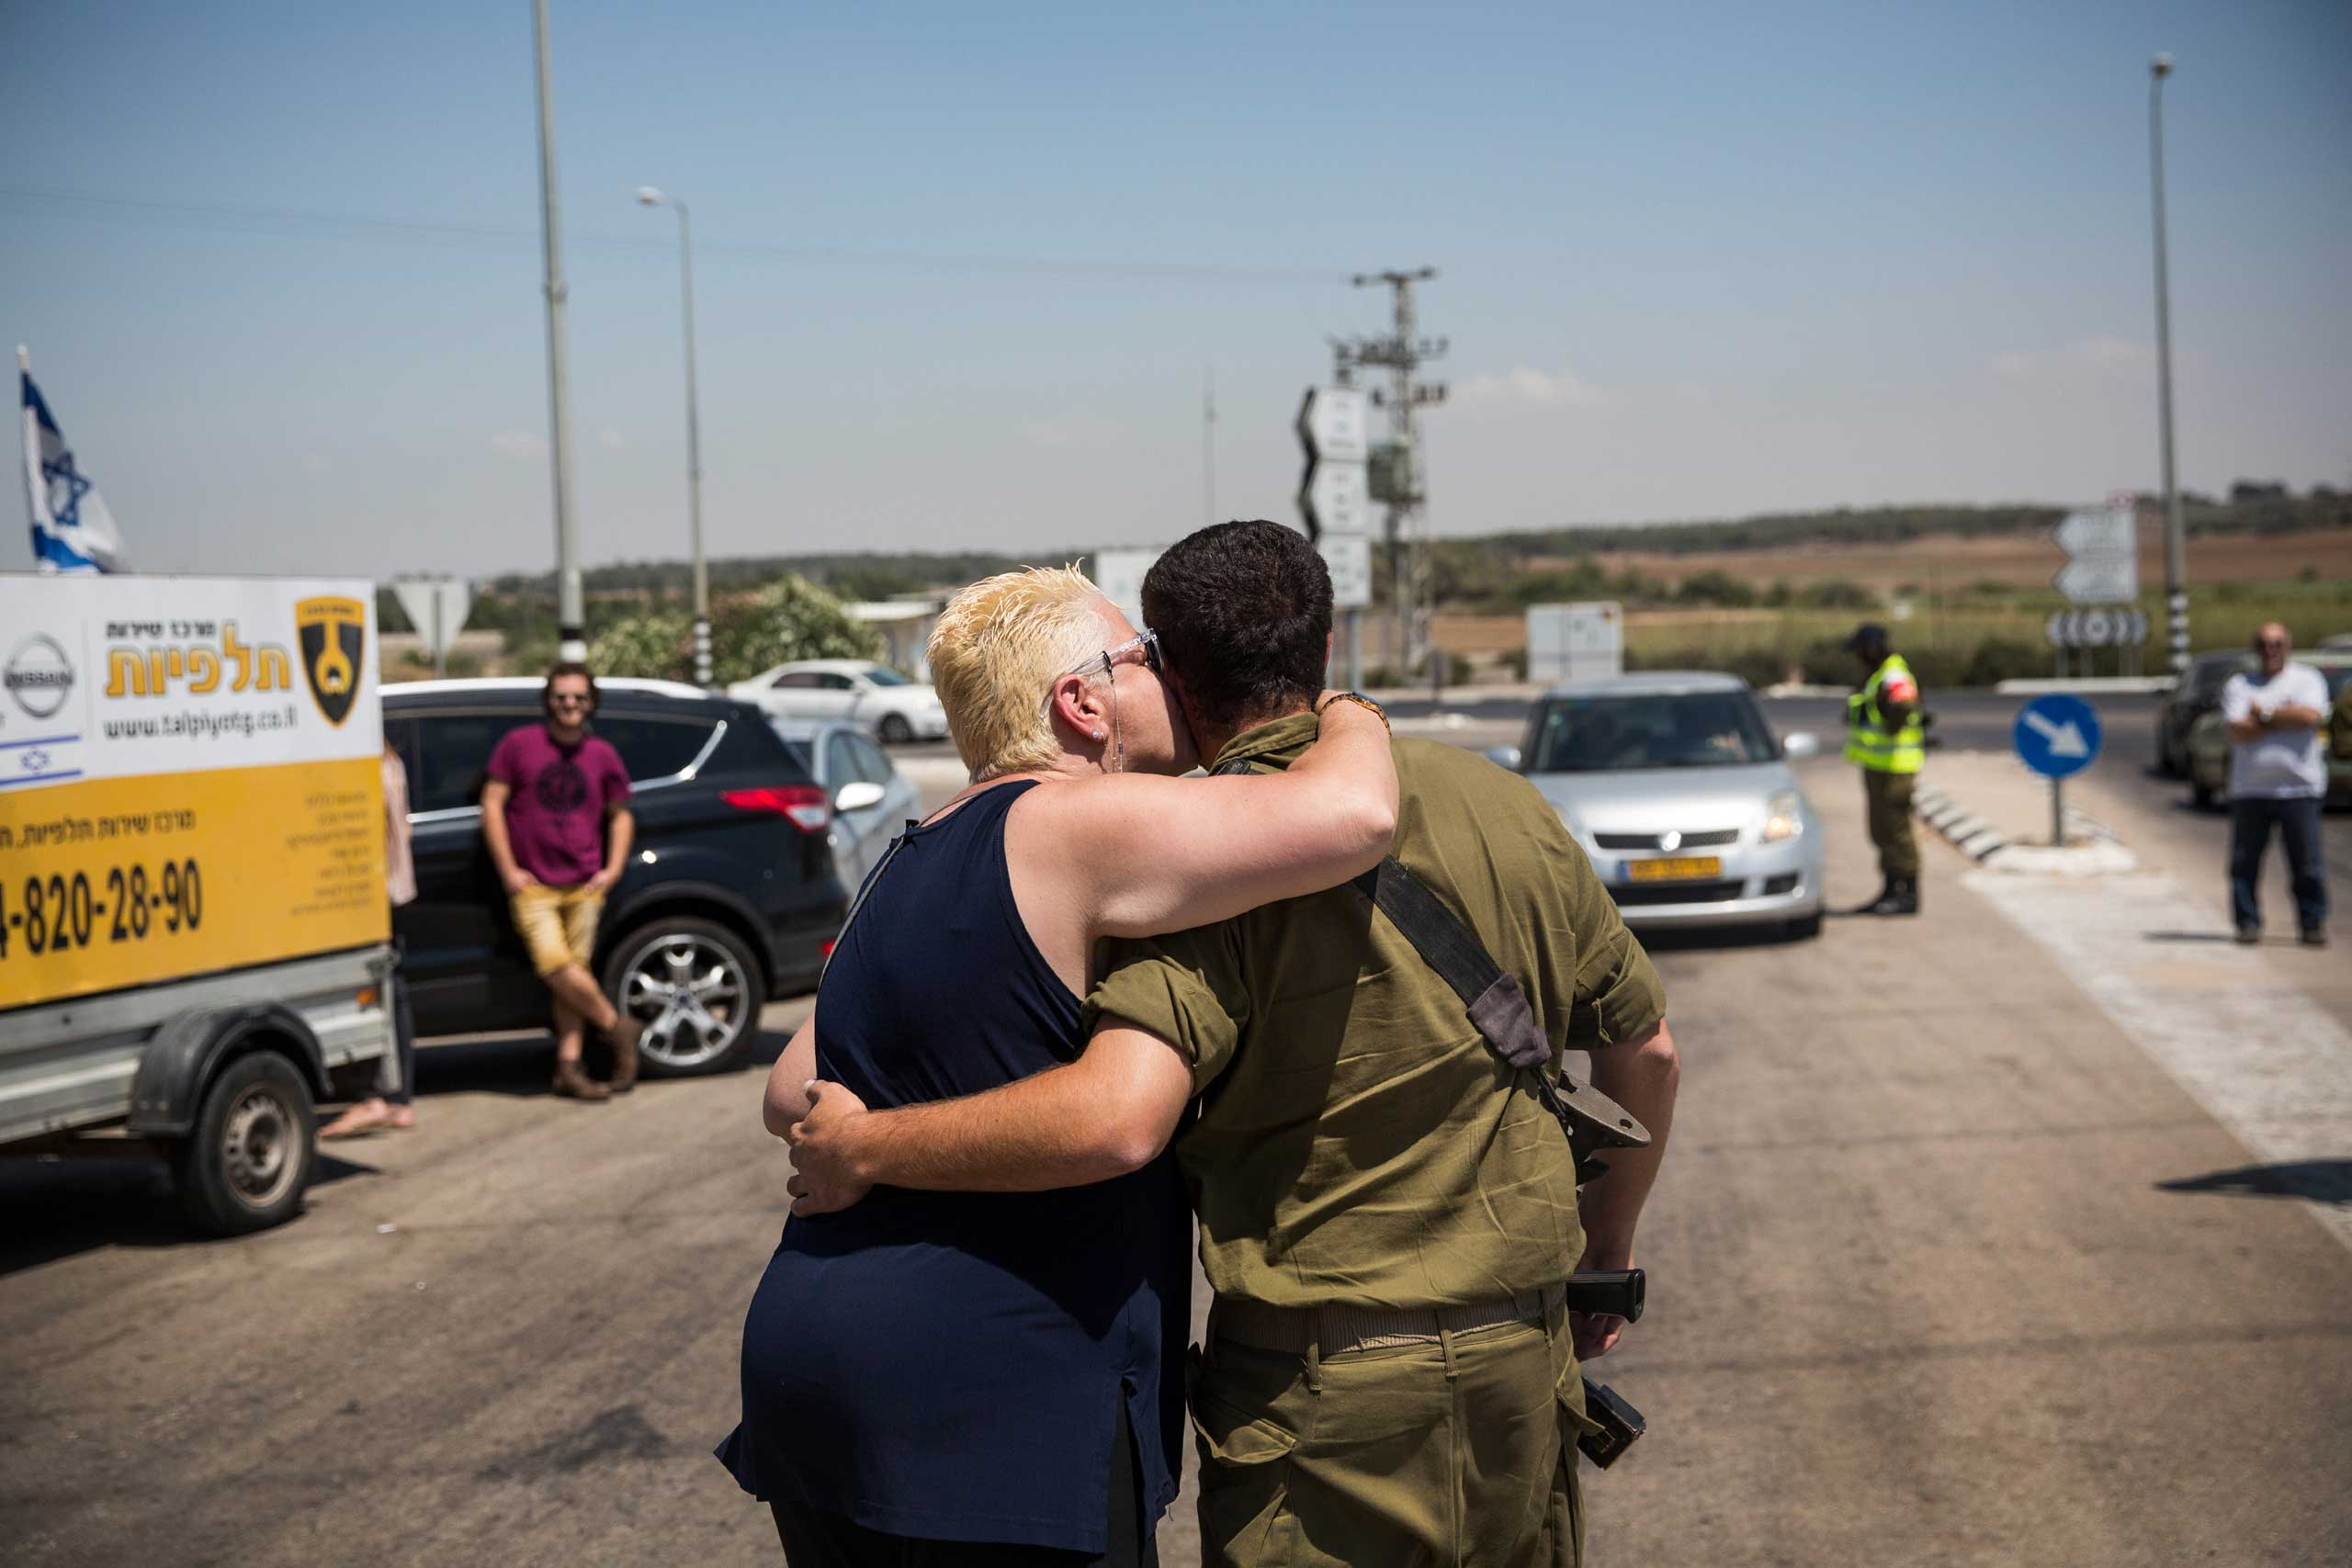 A soldier meets with his loved ones during a 12-hour ceasefire just outside the militarized zone close to the Israel-Gaza border near Zikim, Israel, July 26, 2014.